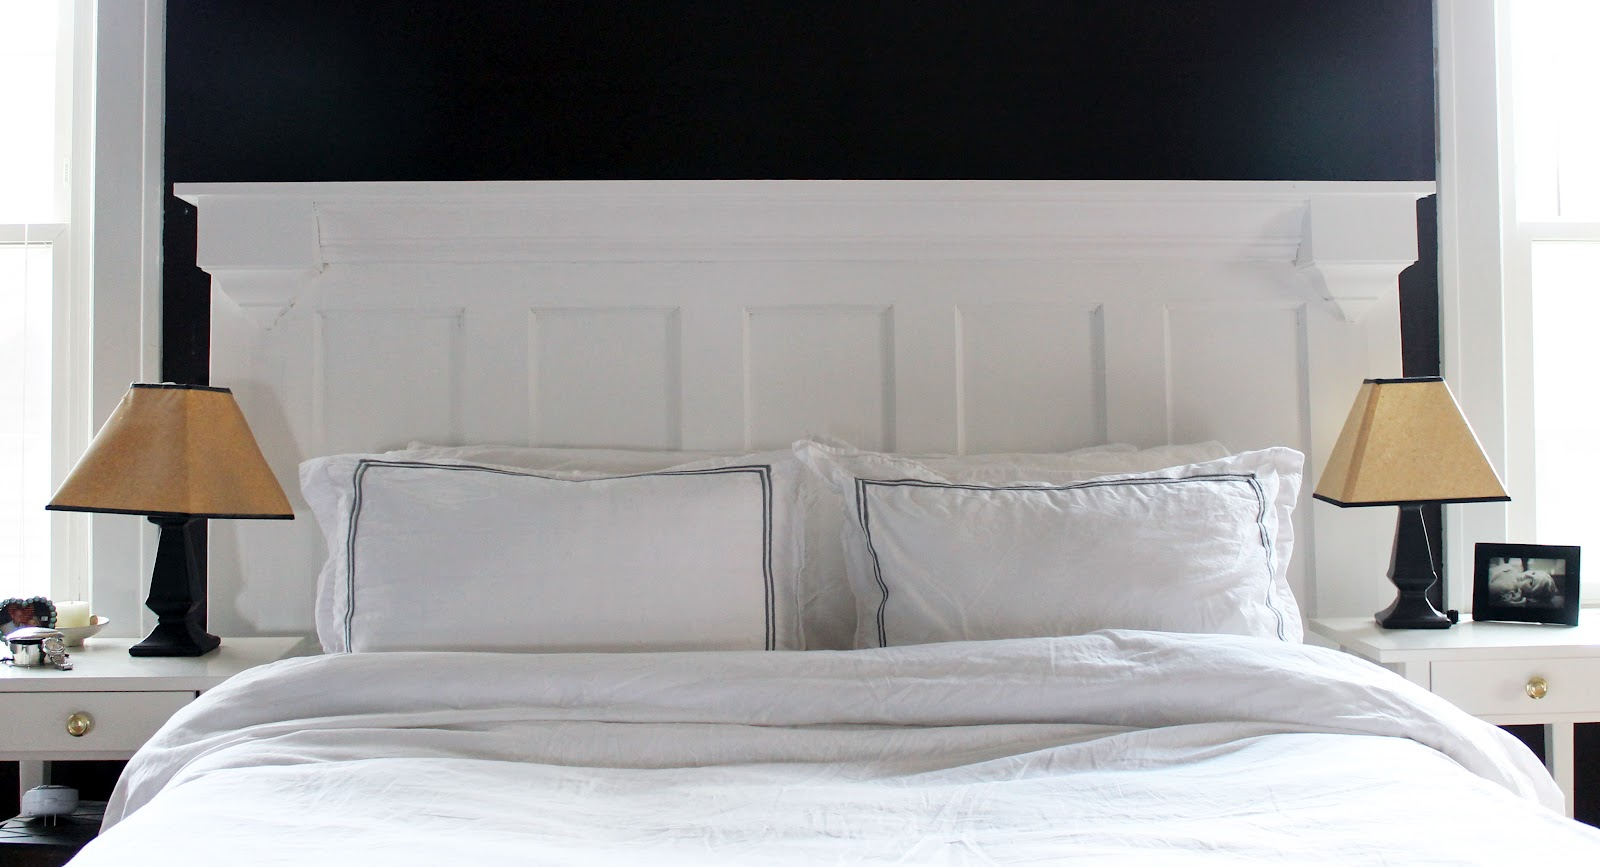 & Hammers and High Heels: Our Completed Door Turned Headboard!